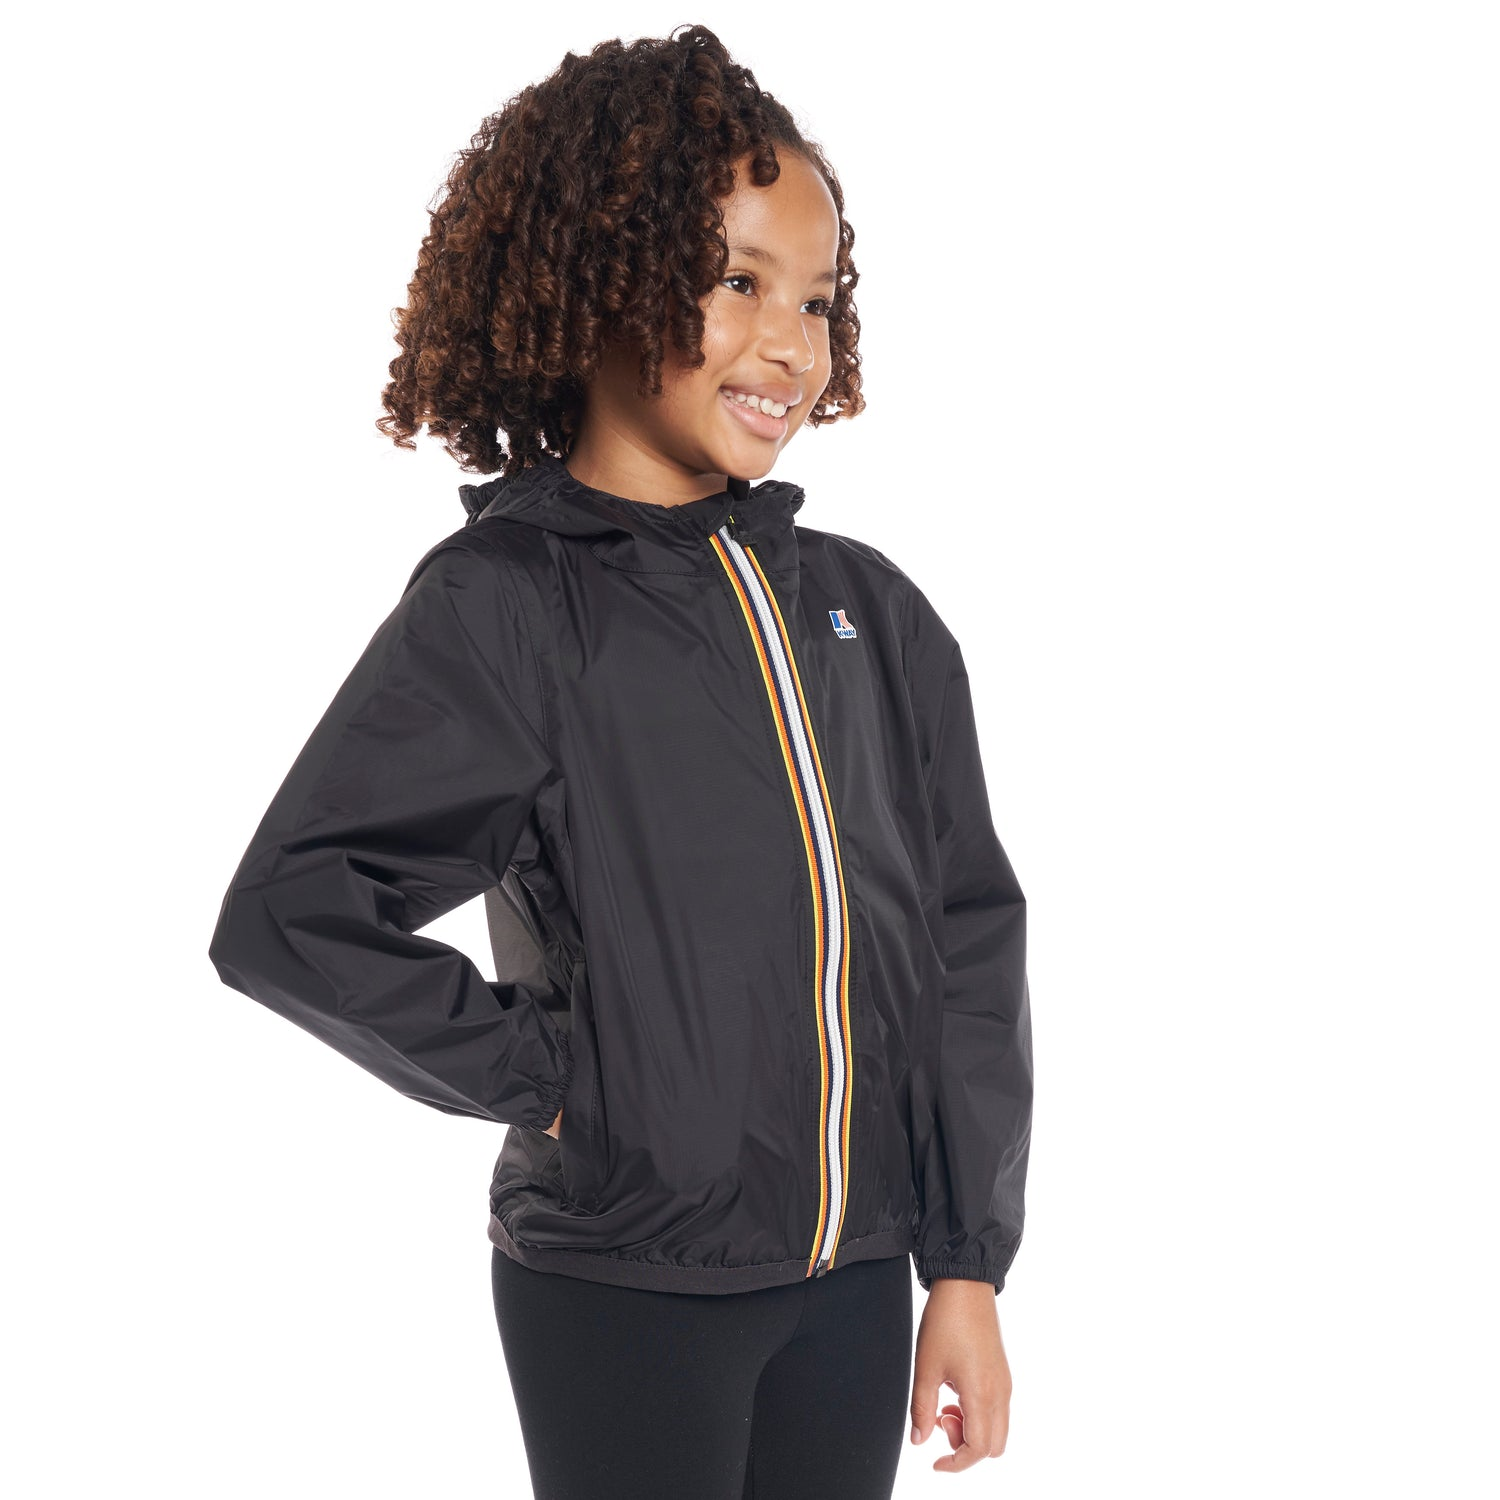 Kids Le Vrai 3.0 Claude Jacket Black - Side